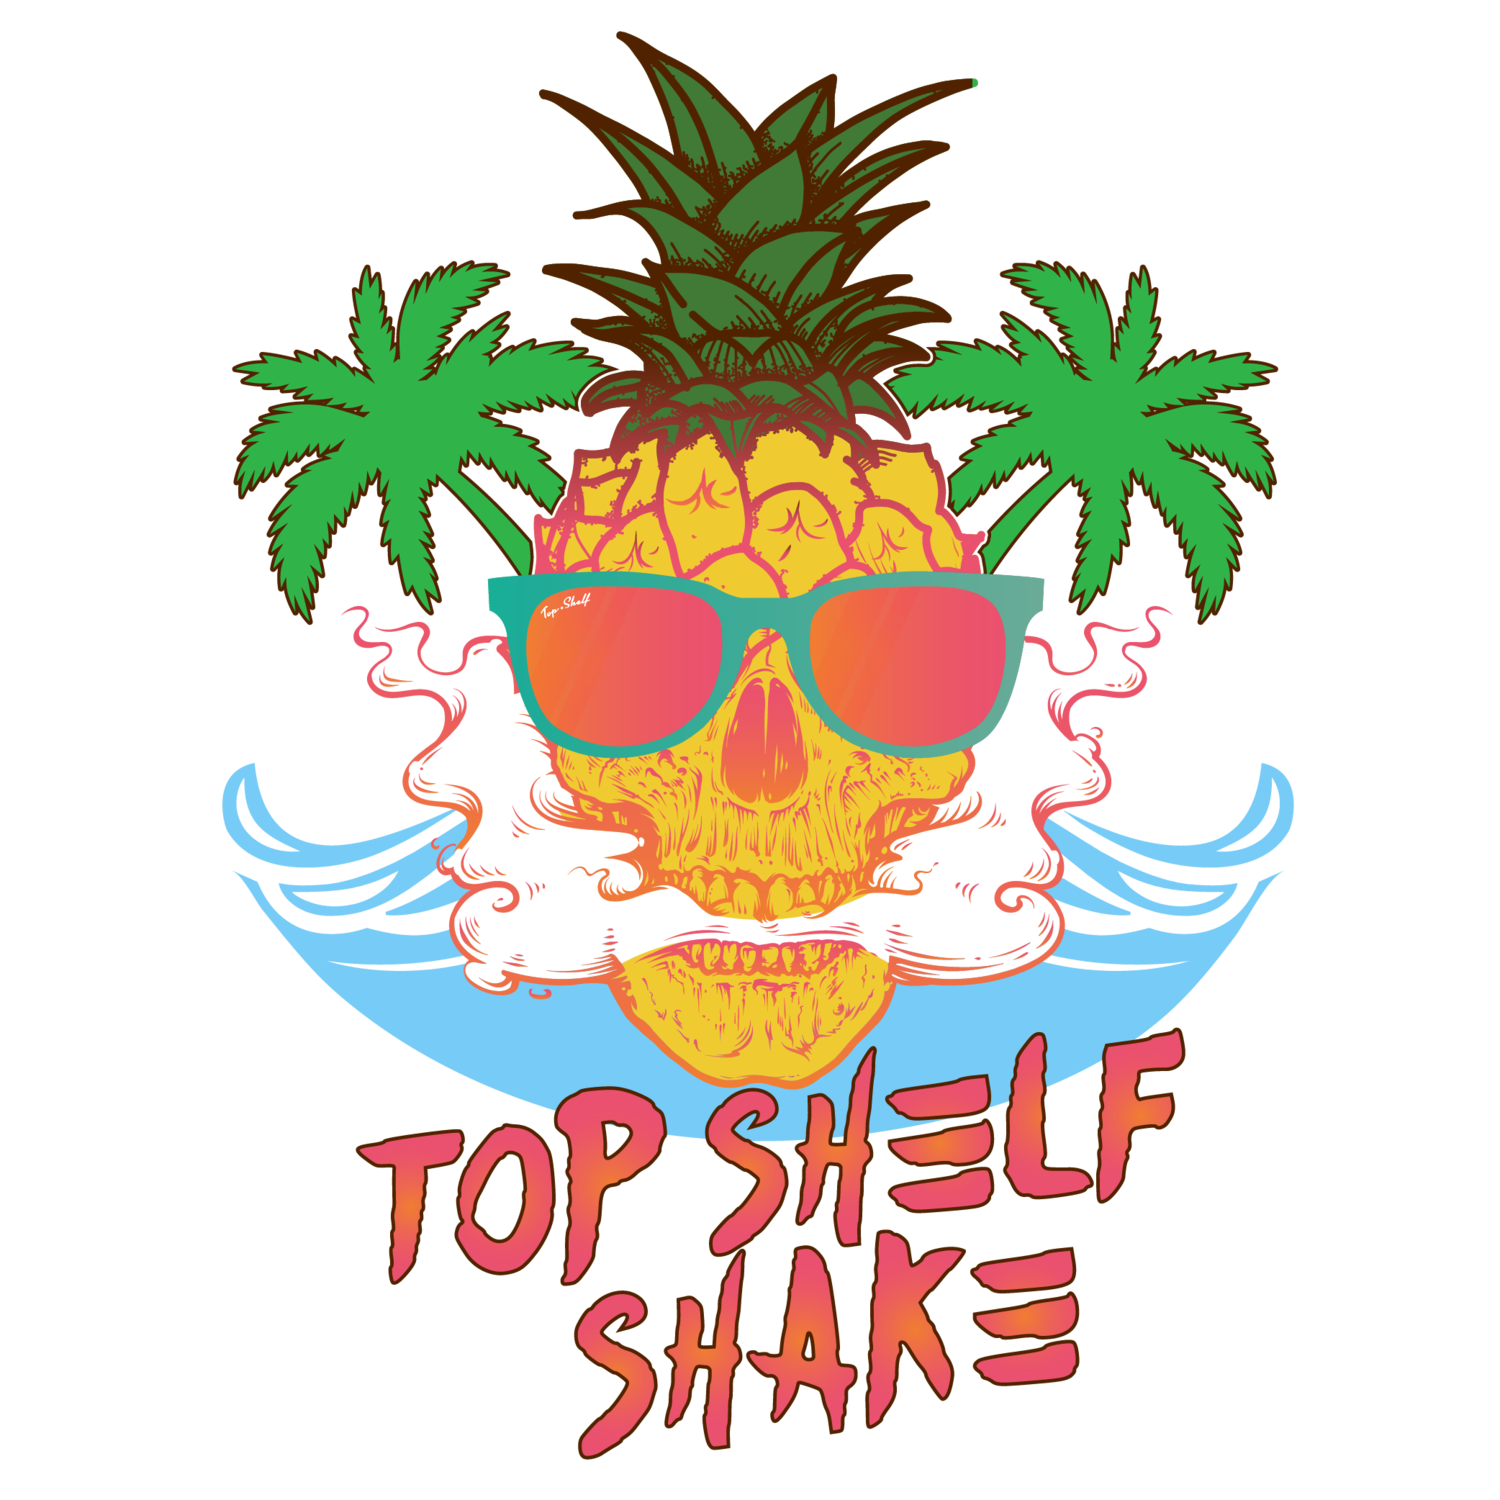 Top Shelf Shake